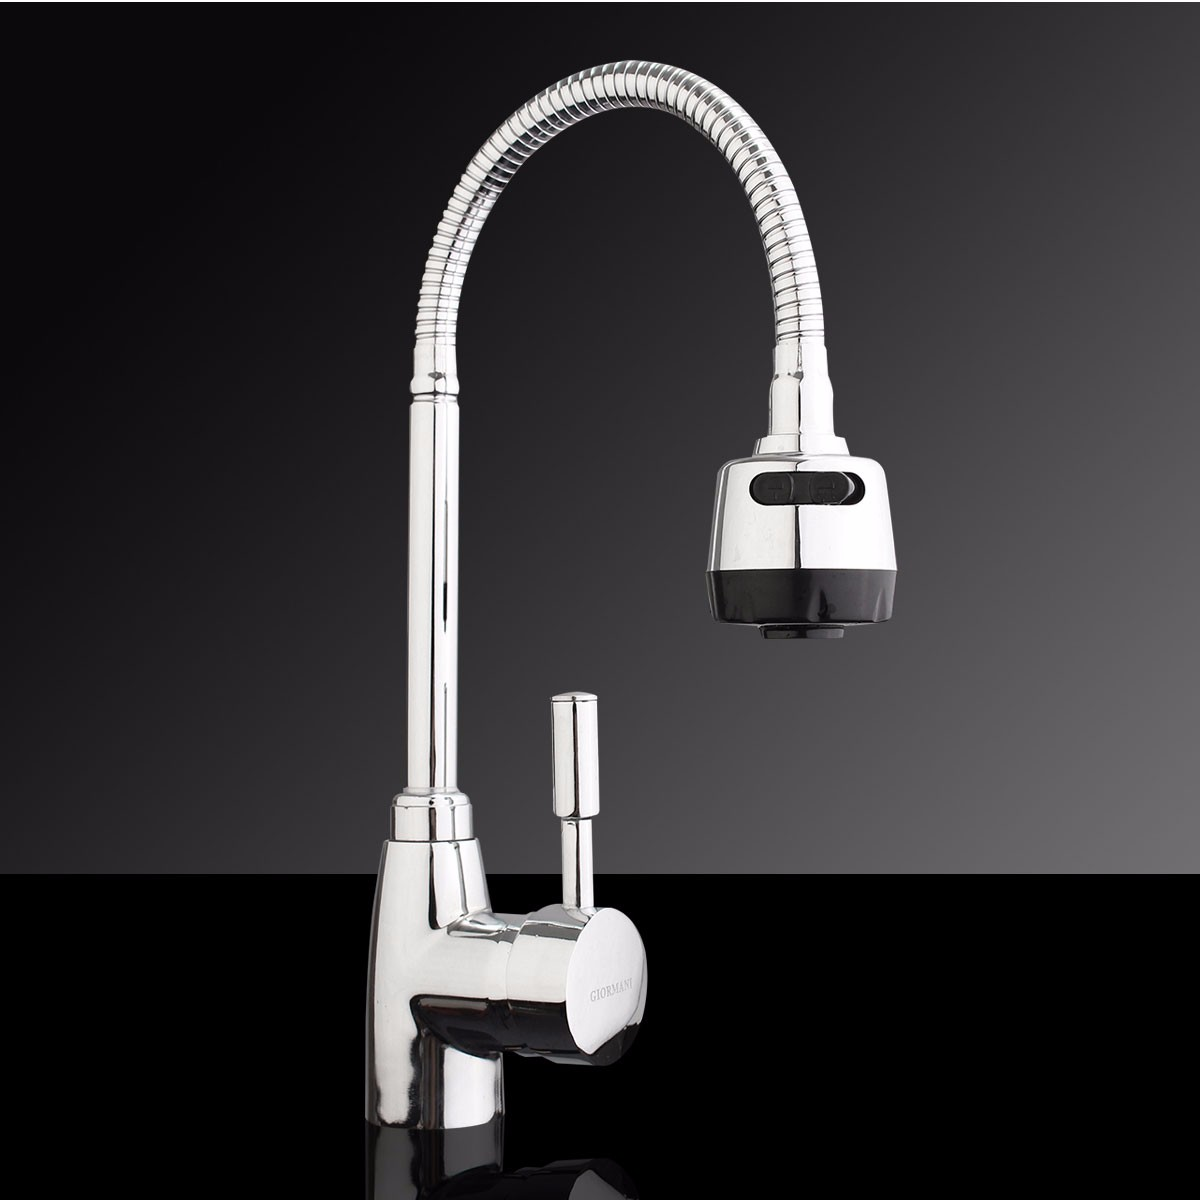 Chrome Swivel Kitchen Faucet Modern Basin Faucets Mixer Tap Alloy Bathroom Tap Faucet Kitchen Mixer Cold and Hot Water цена 2017